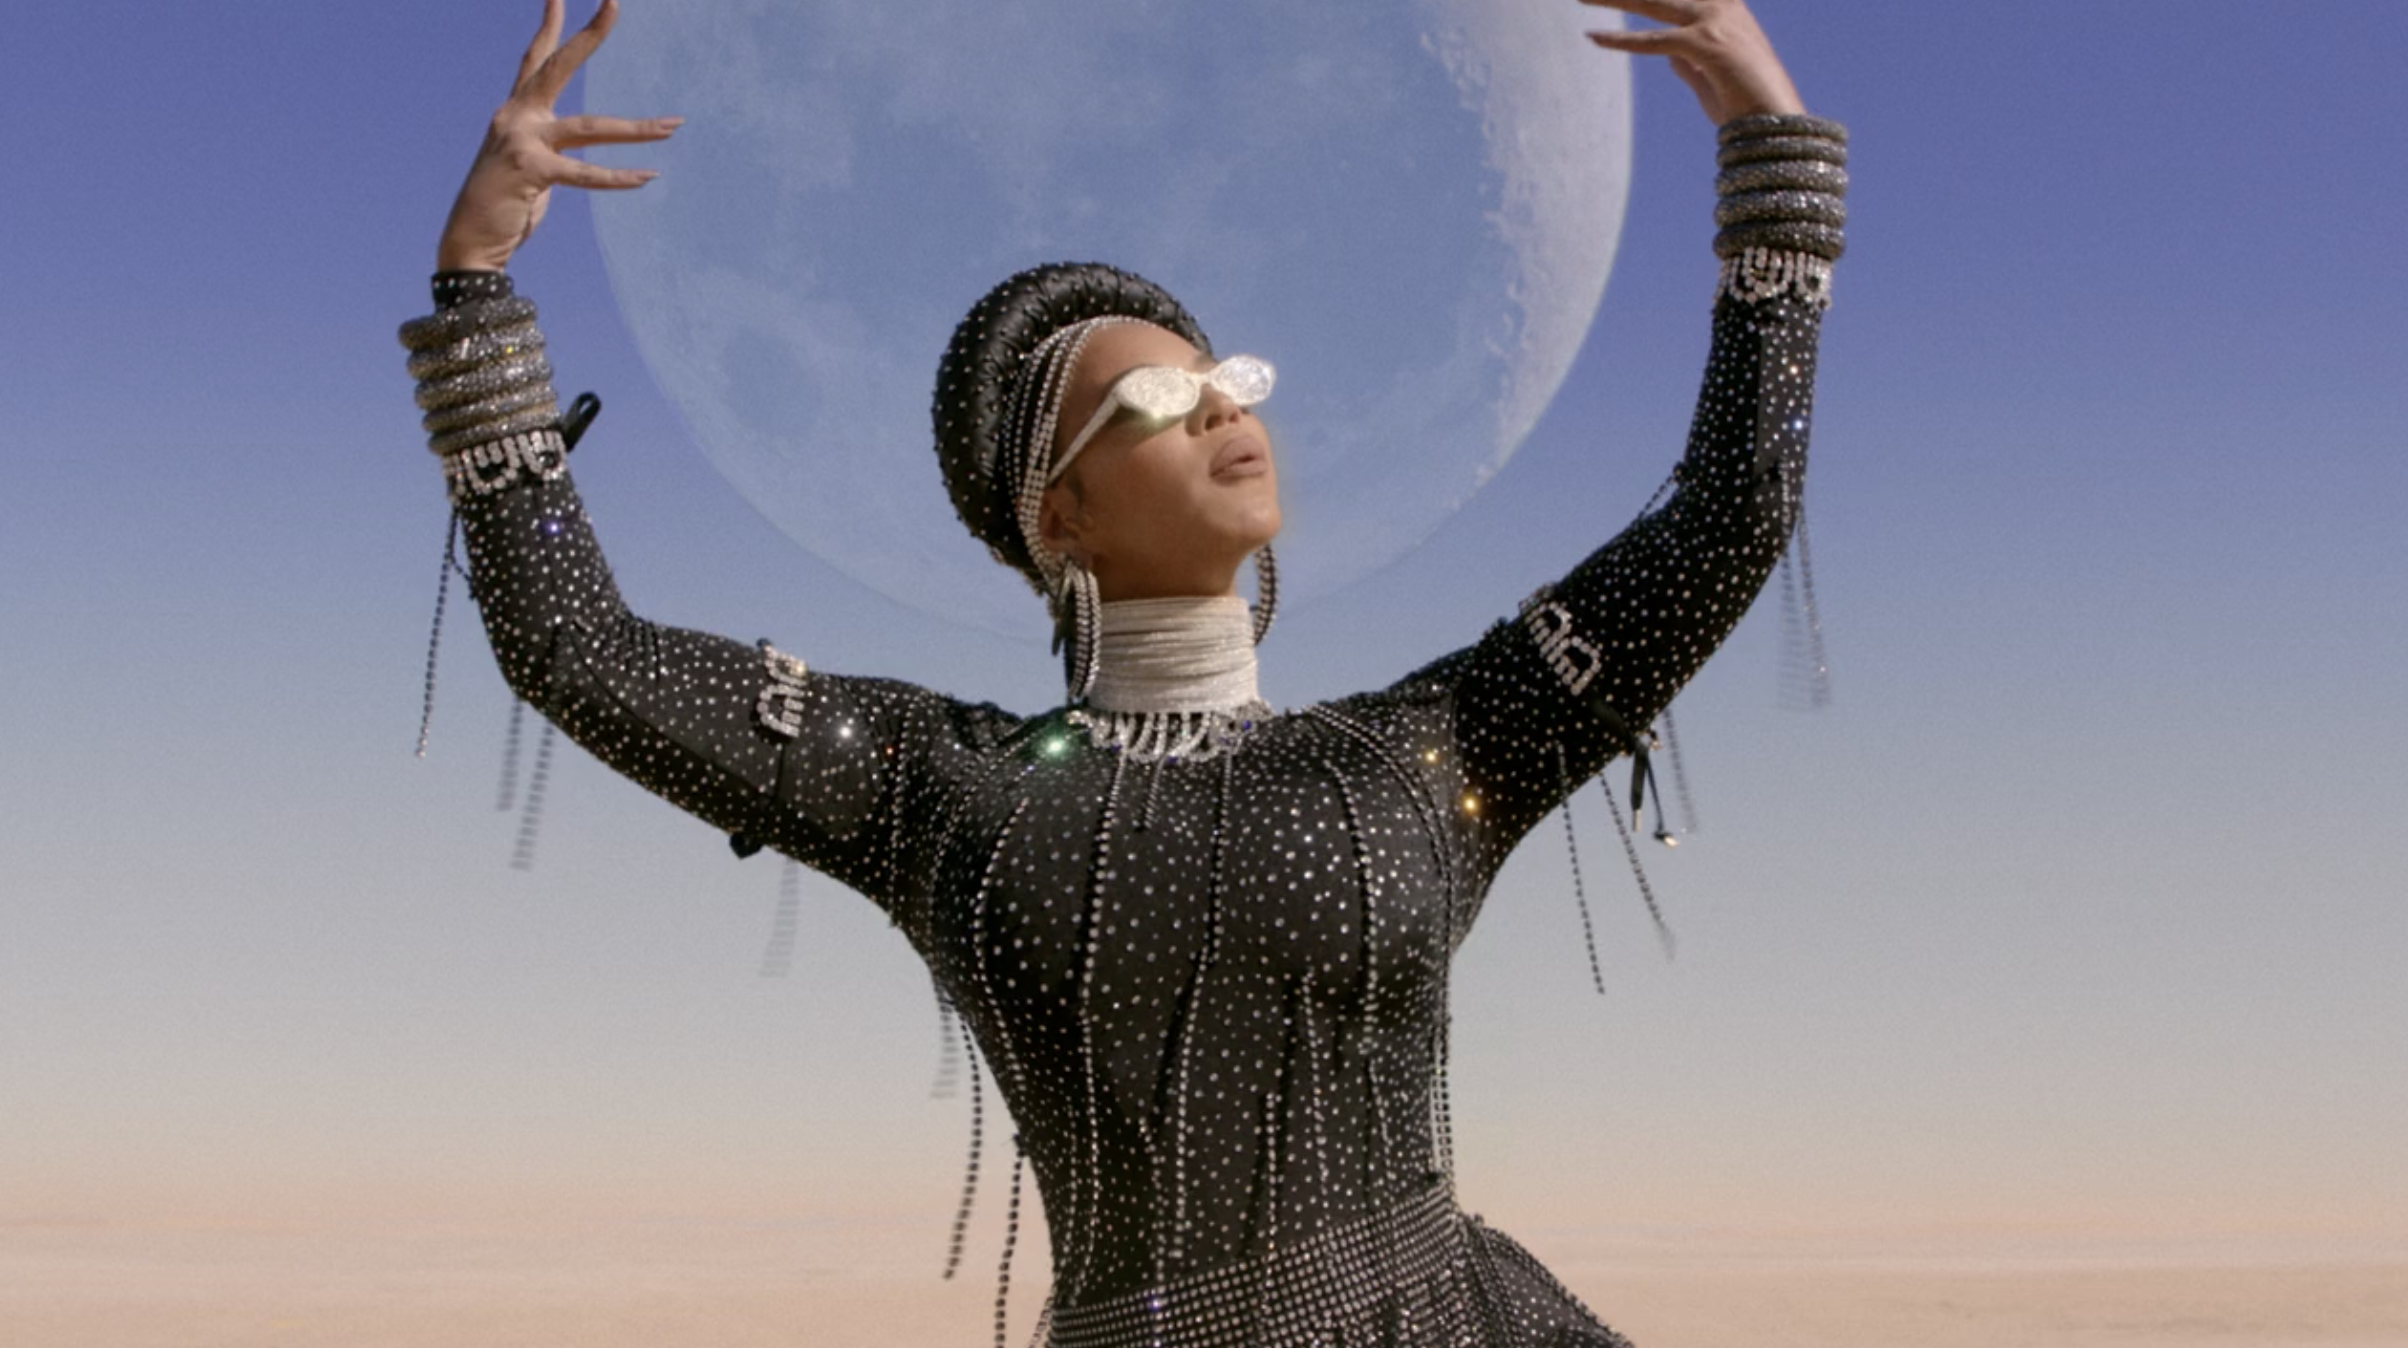 Beyoncé holding up her arms with the moon behind her